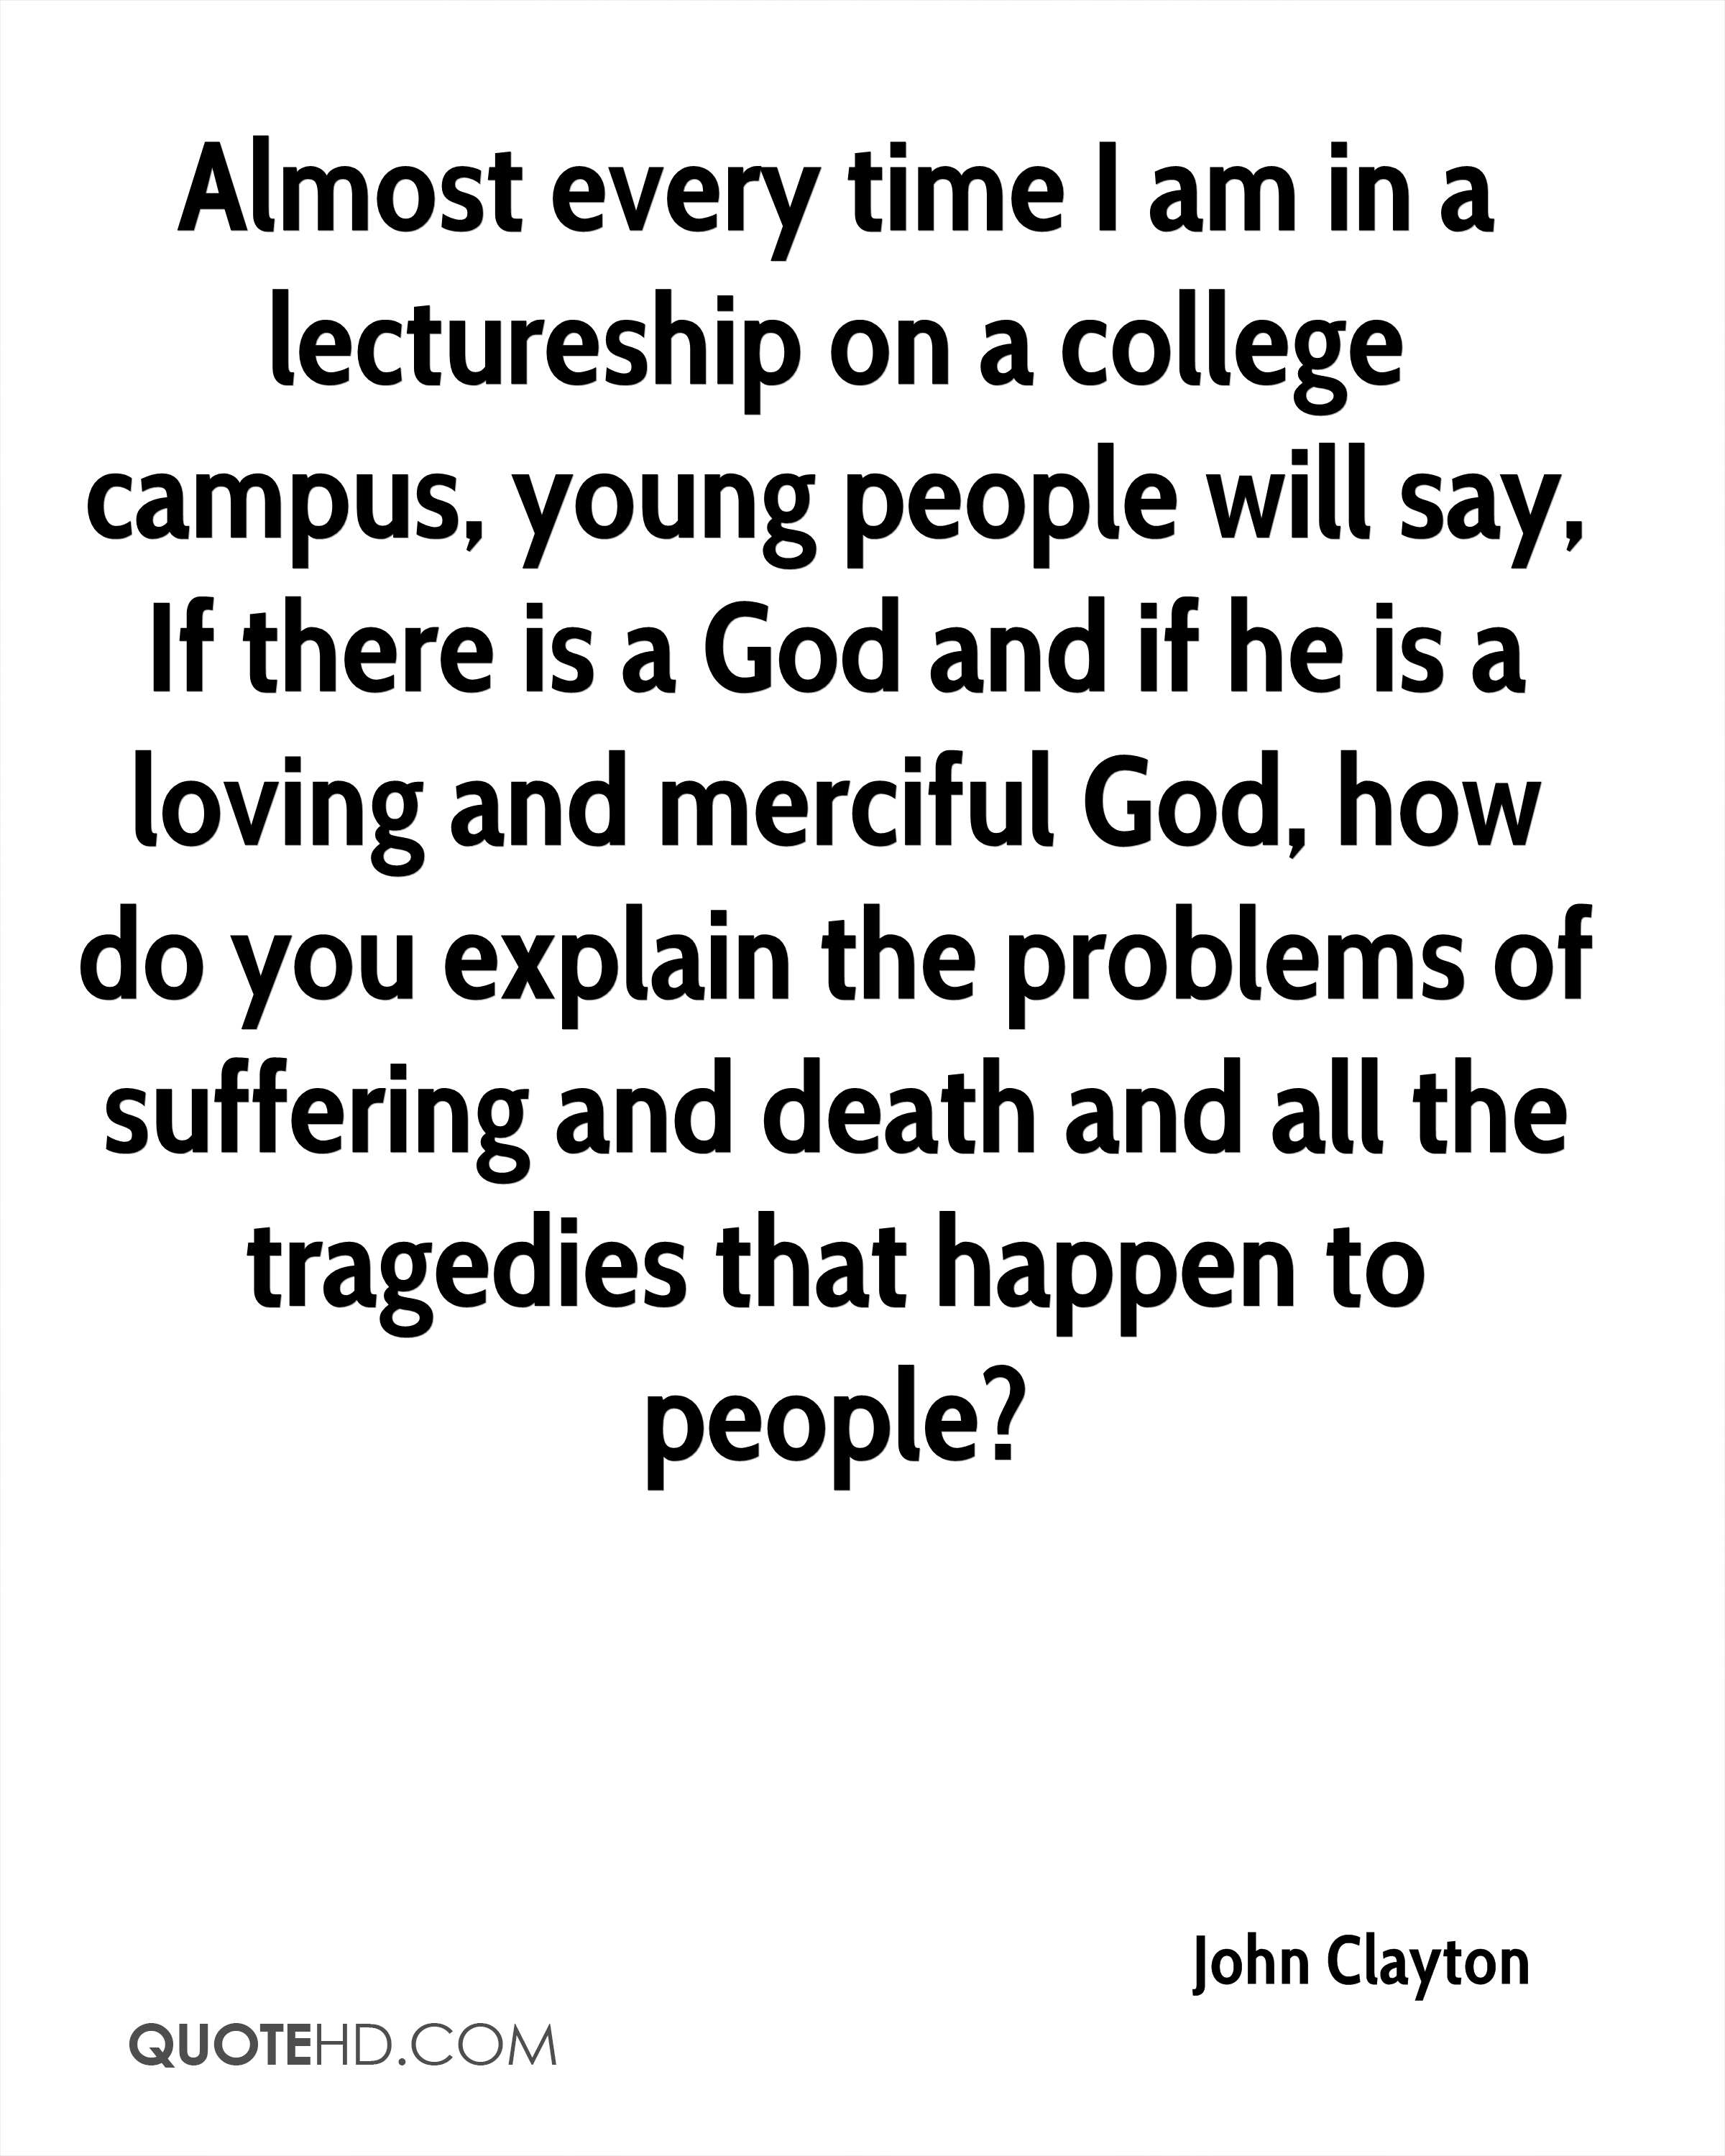 Almost every time I am in a lectureship on a college campus, young people will say, If there is a God and if he is a loving and merciful God, how do you explain the problems of suffering and death and all the tragedies that happen to people?